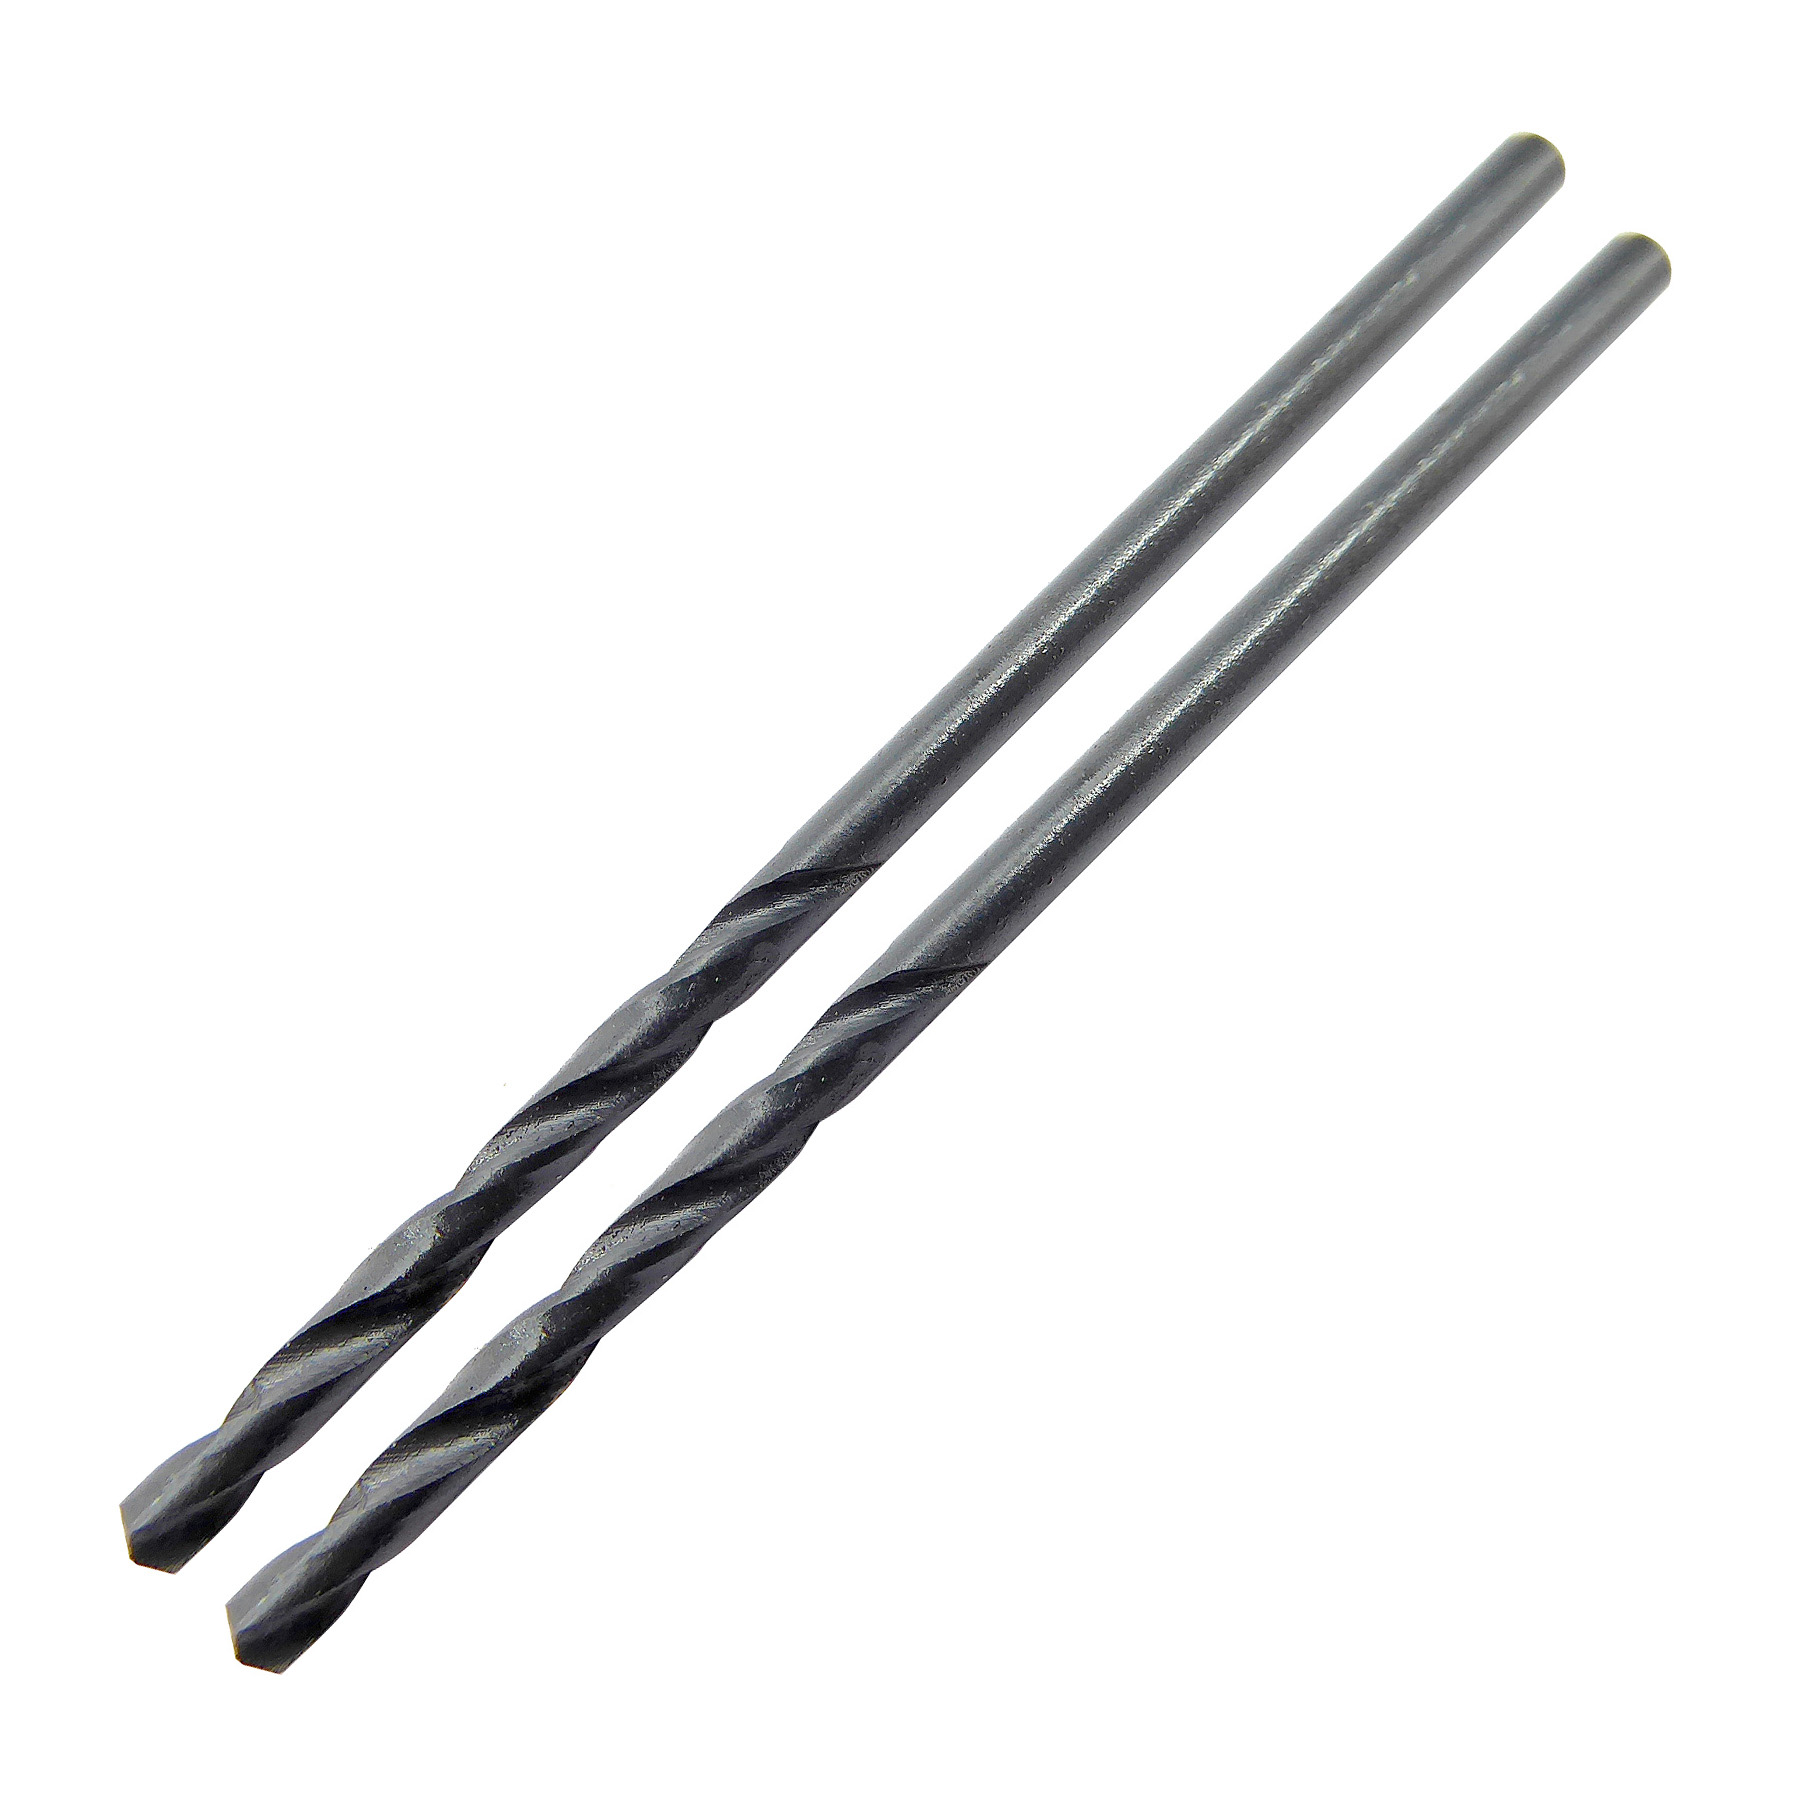 2.0mm x 49mm HSS Roll Forged Jobber Drill Pack of 2